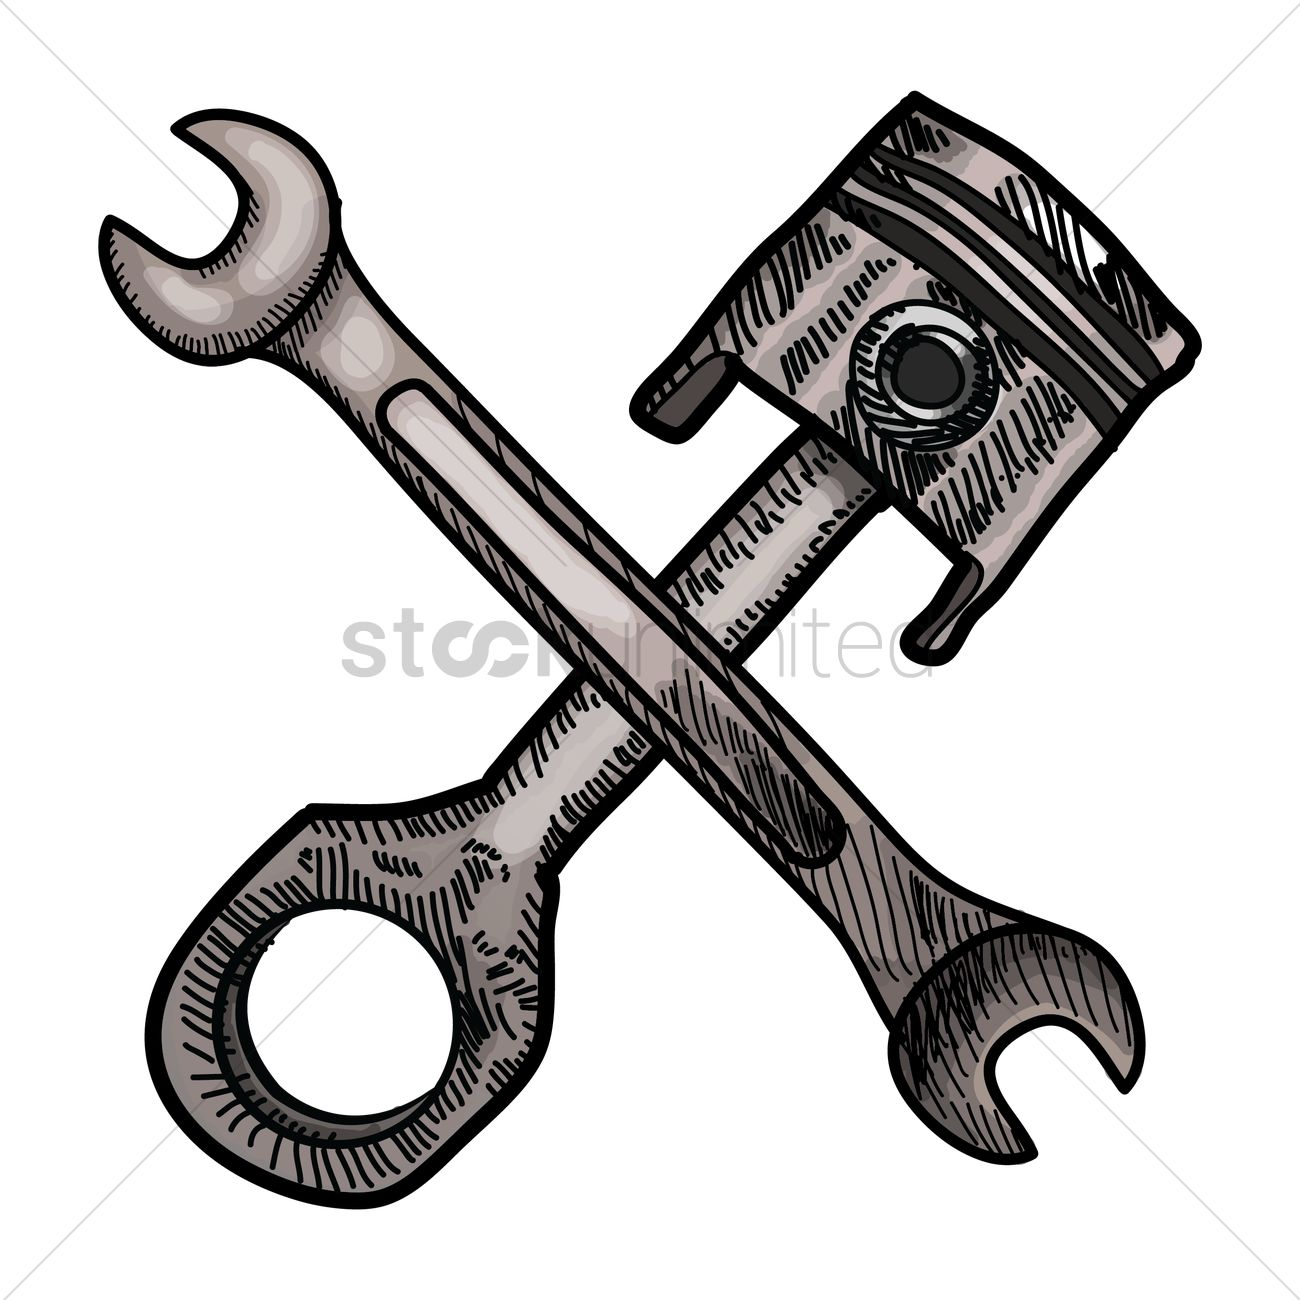 Piston and spanner vector image 1459962 stockunlimited for Piston and wrench tattoo